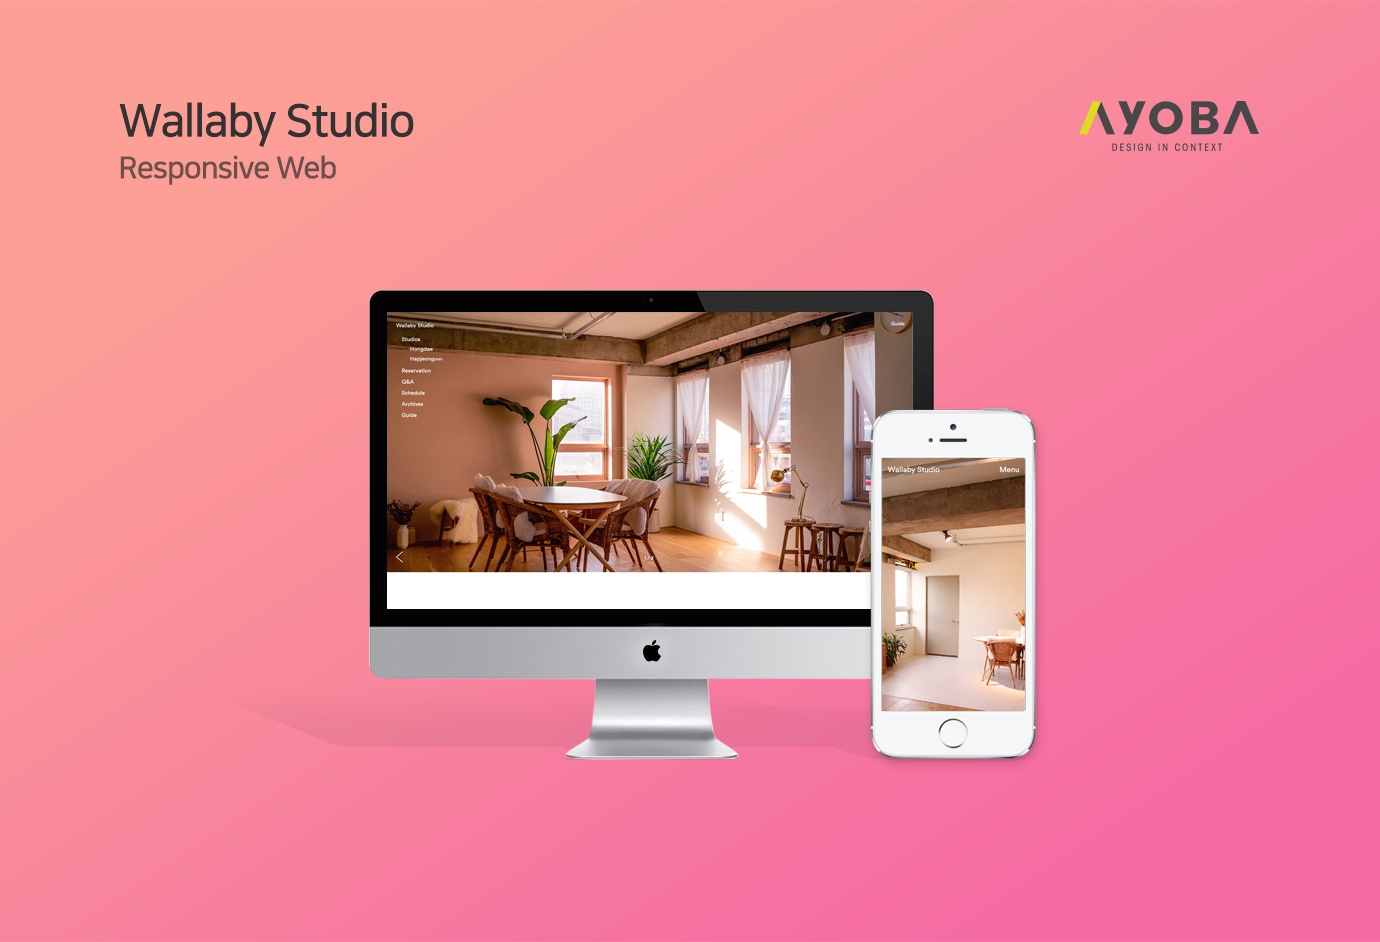 Wallaby Studio image